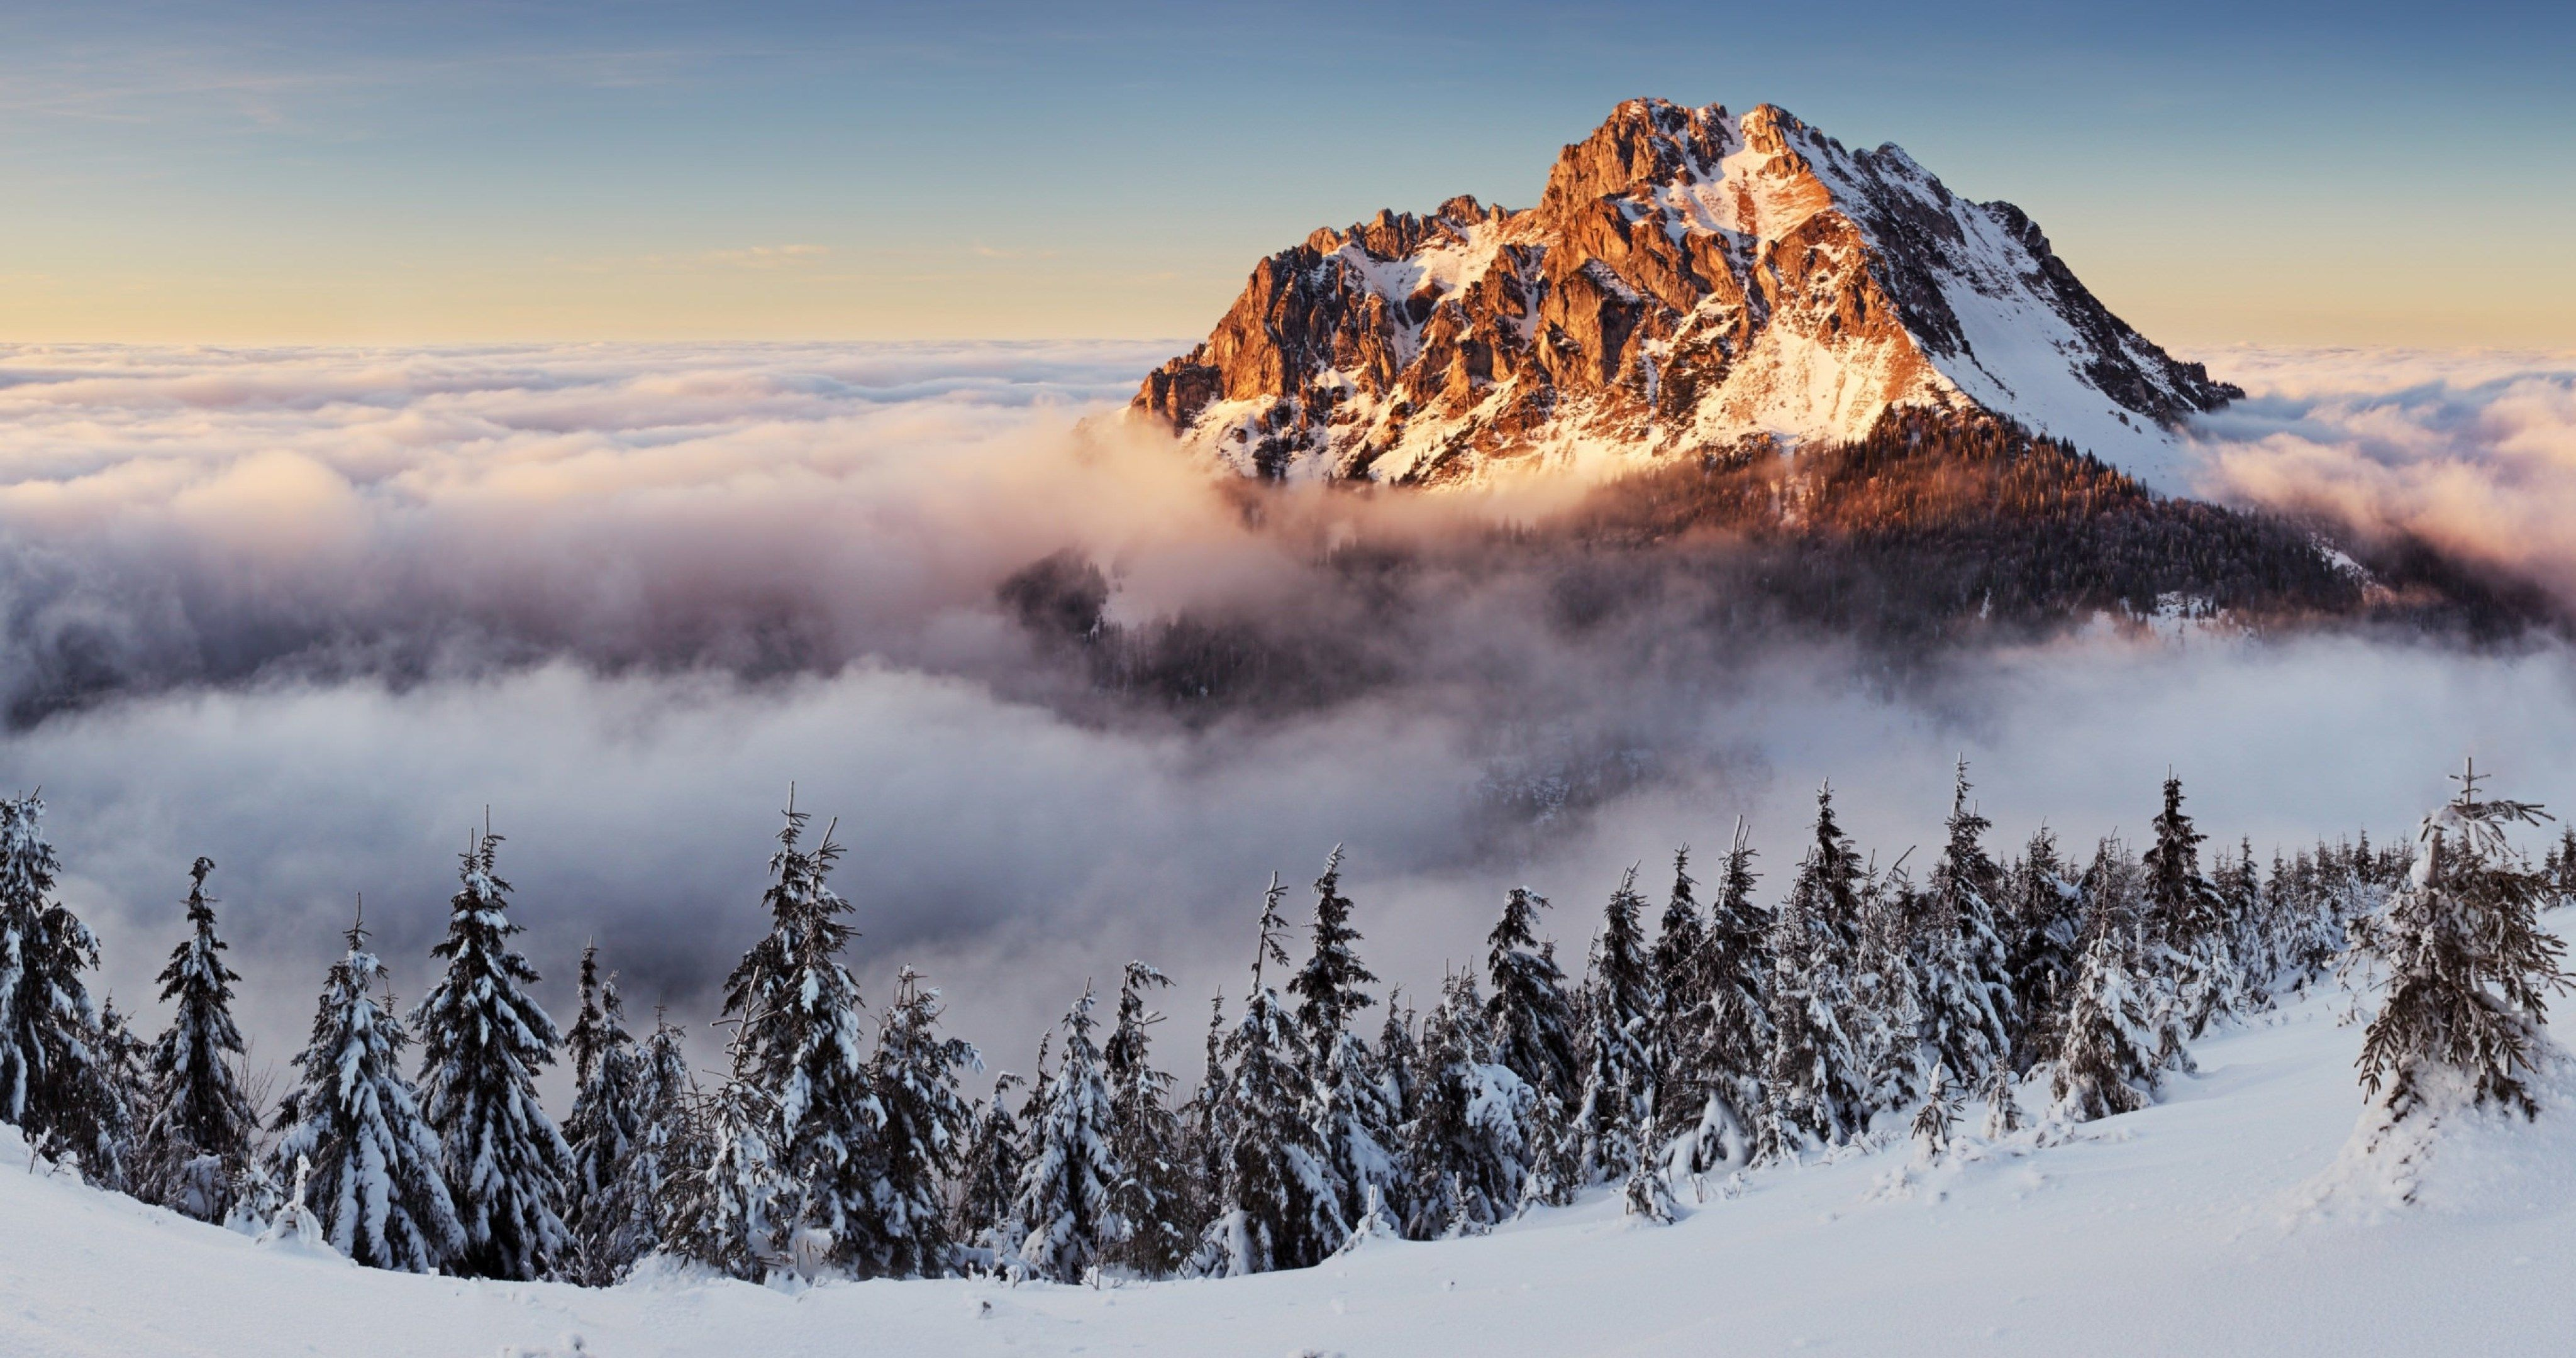 Snow 4K Wallpapers - Top Free Snow 4K Backgrounds ...